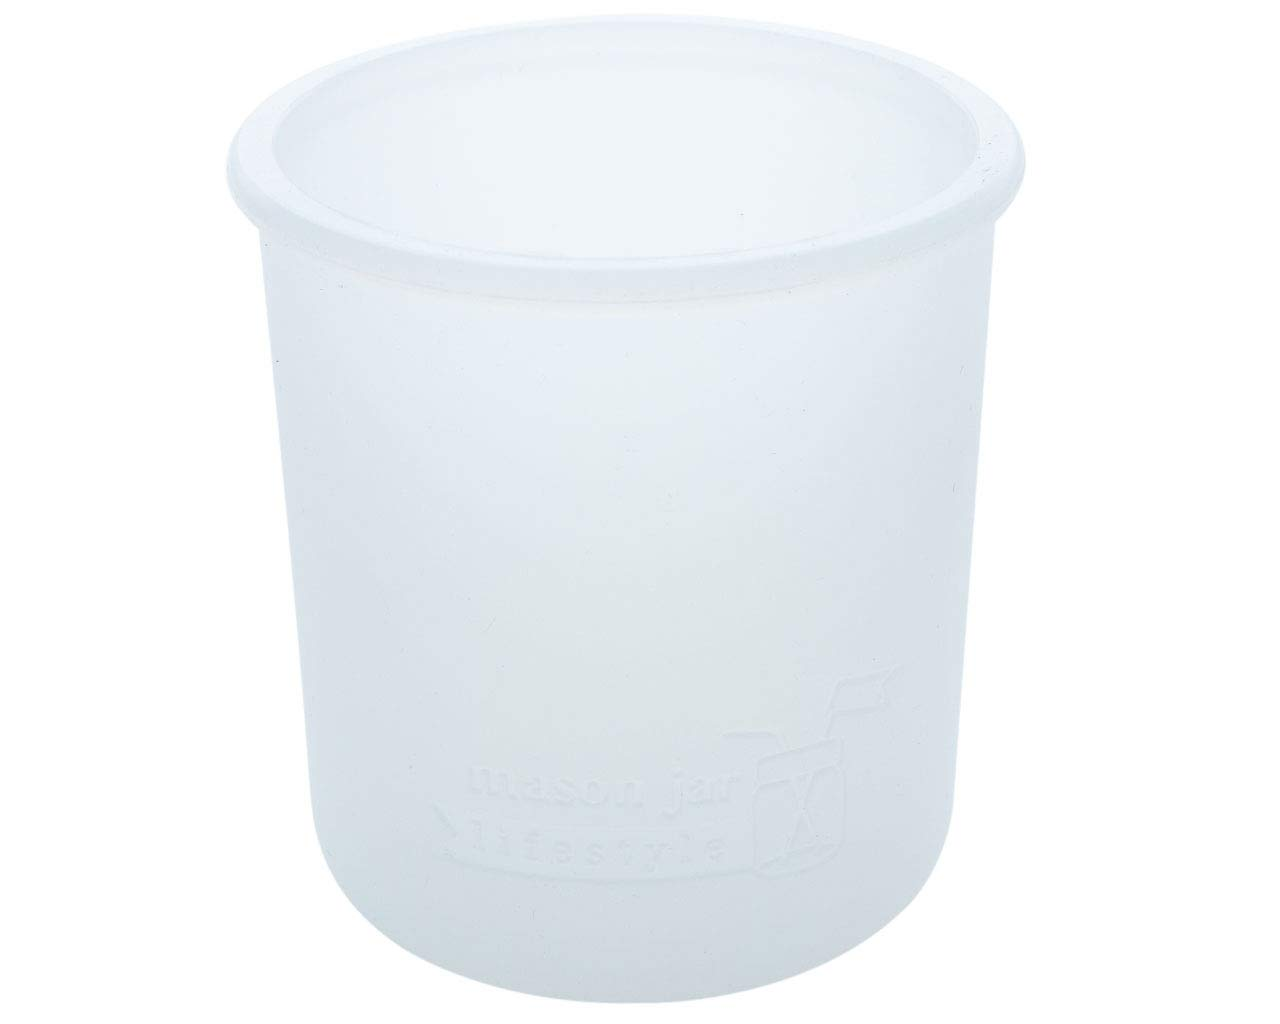 MJL Regular Mouth Pint Silicone Sleeve for Mason Jars (Frost, 2 Pack)